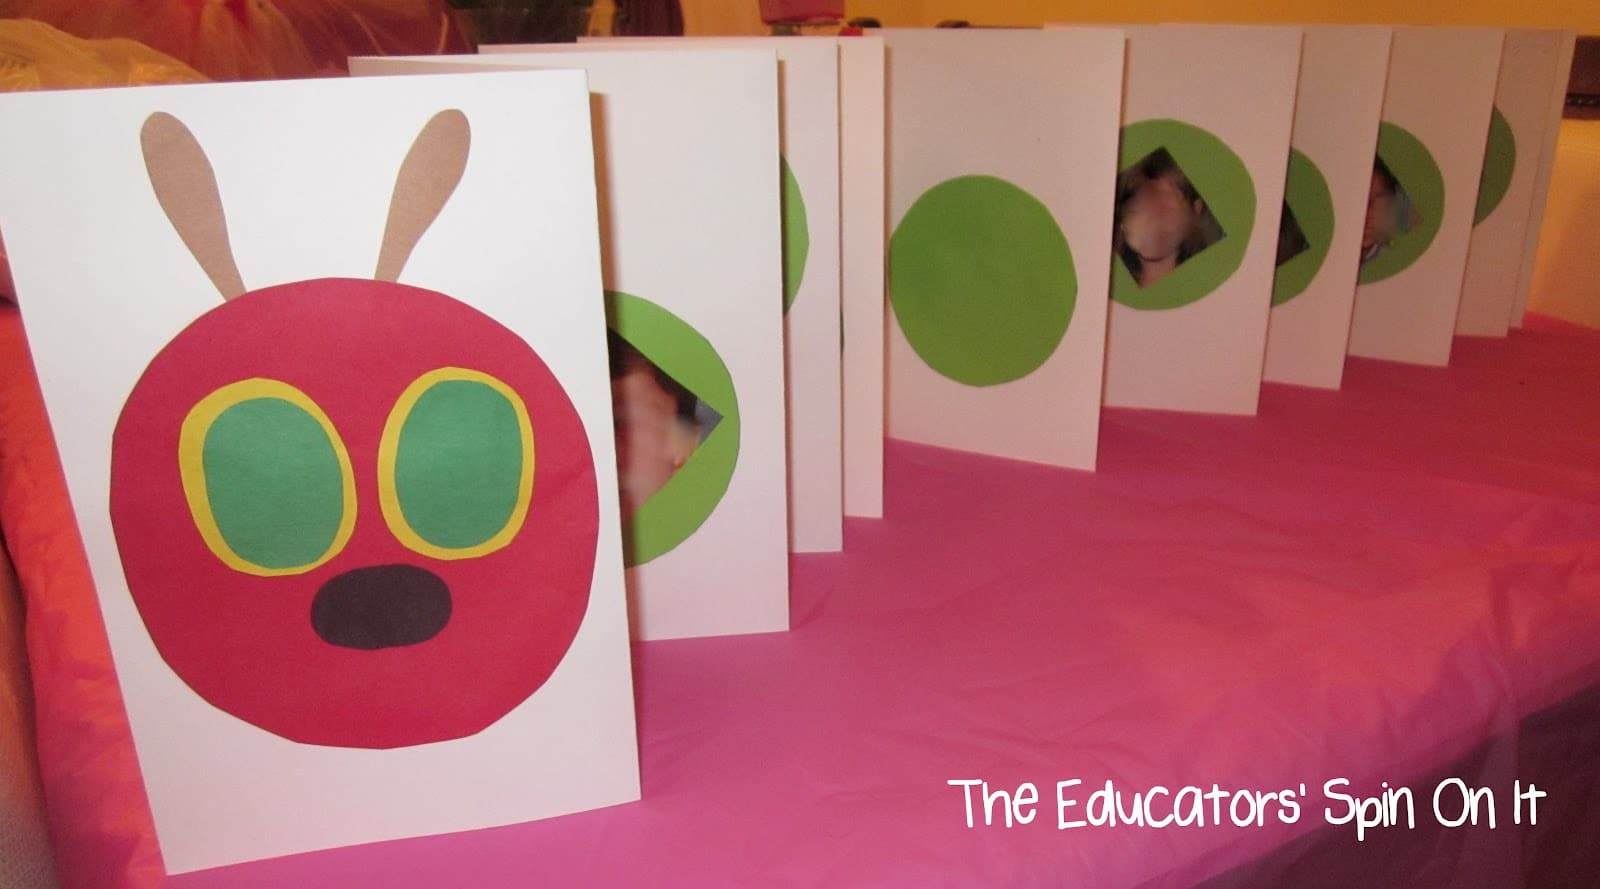 A caterpillar craft made from ten sheets of card stock, one for the head and 9 for the body